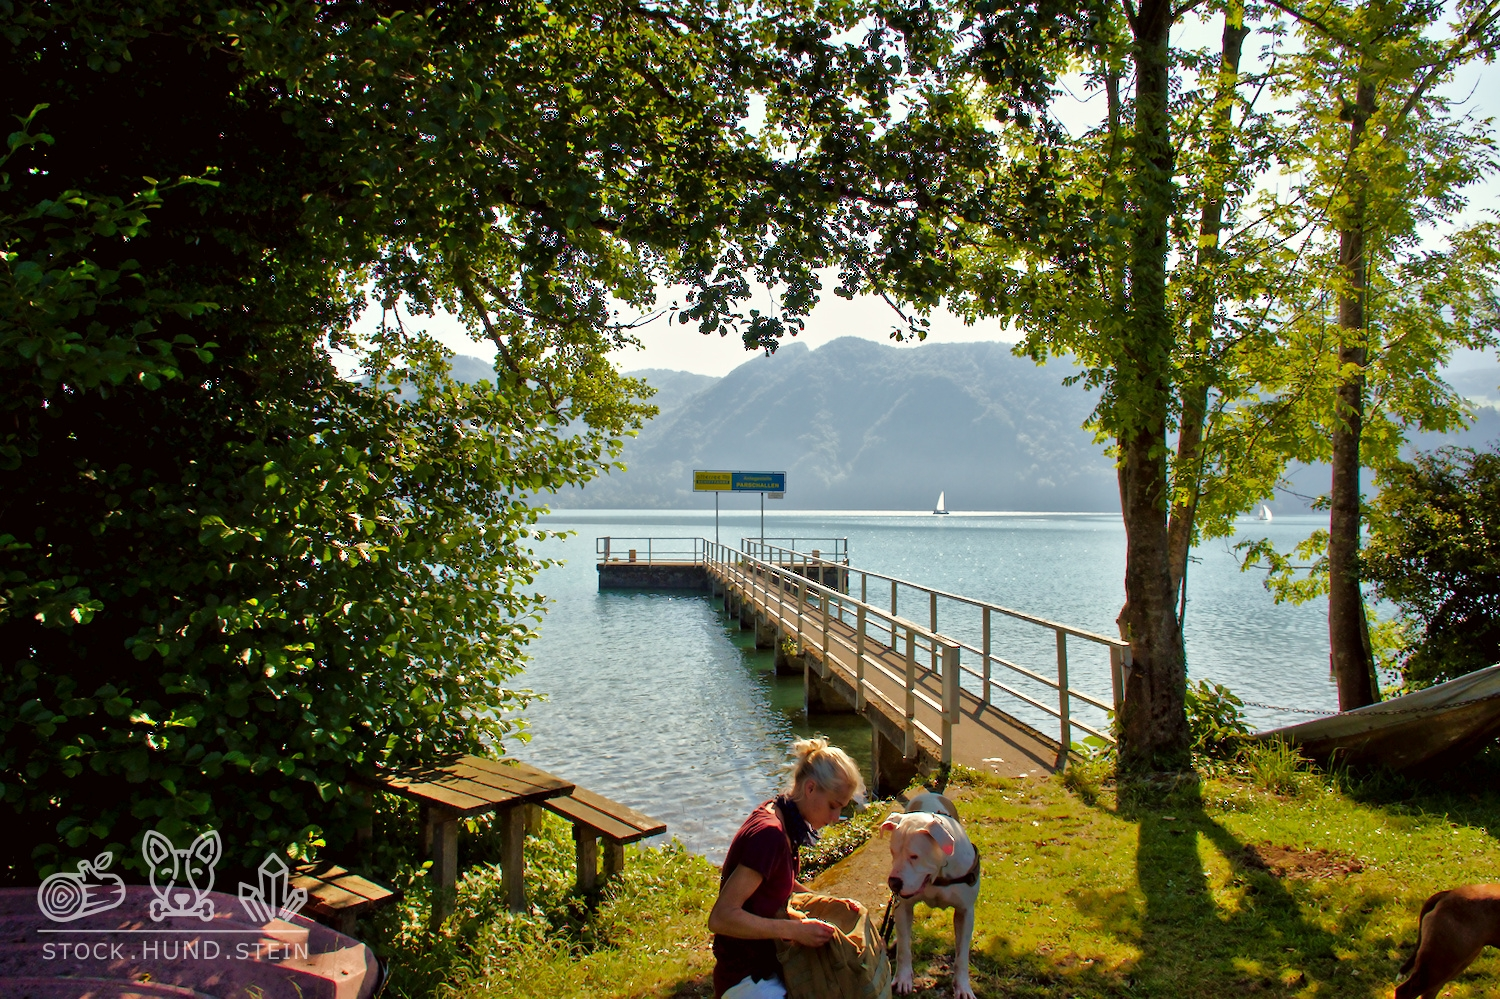 Mord an Bord – am Attersee…